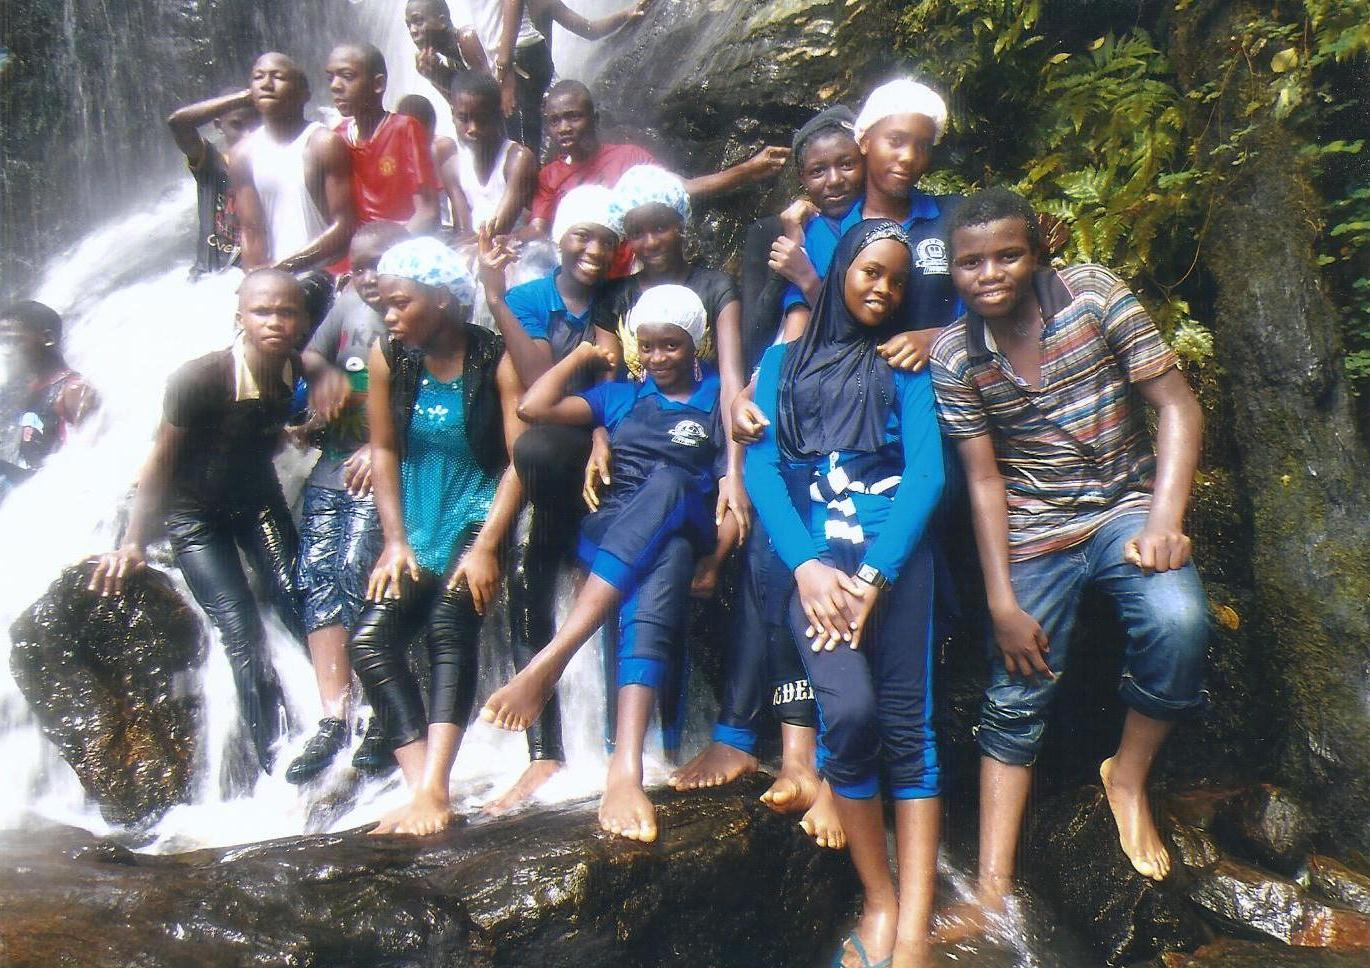 visit to Olumirin erinjesa waterfall